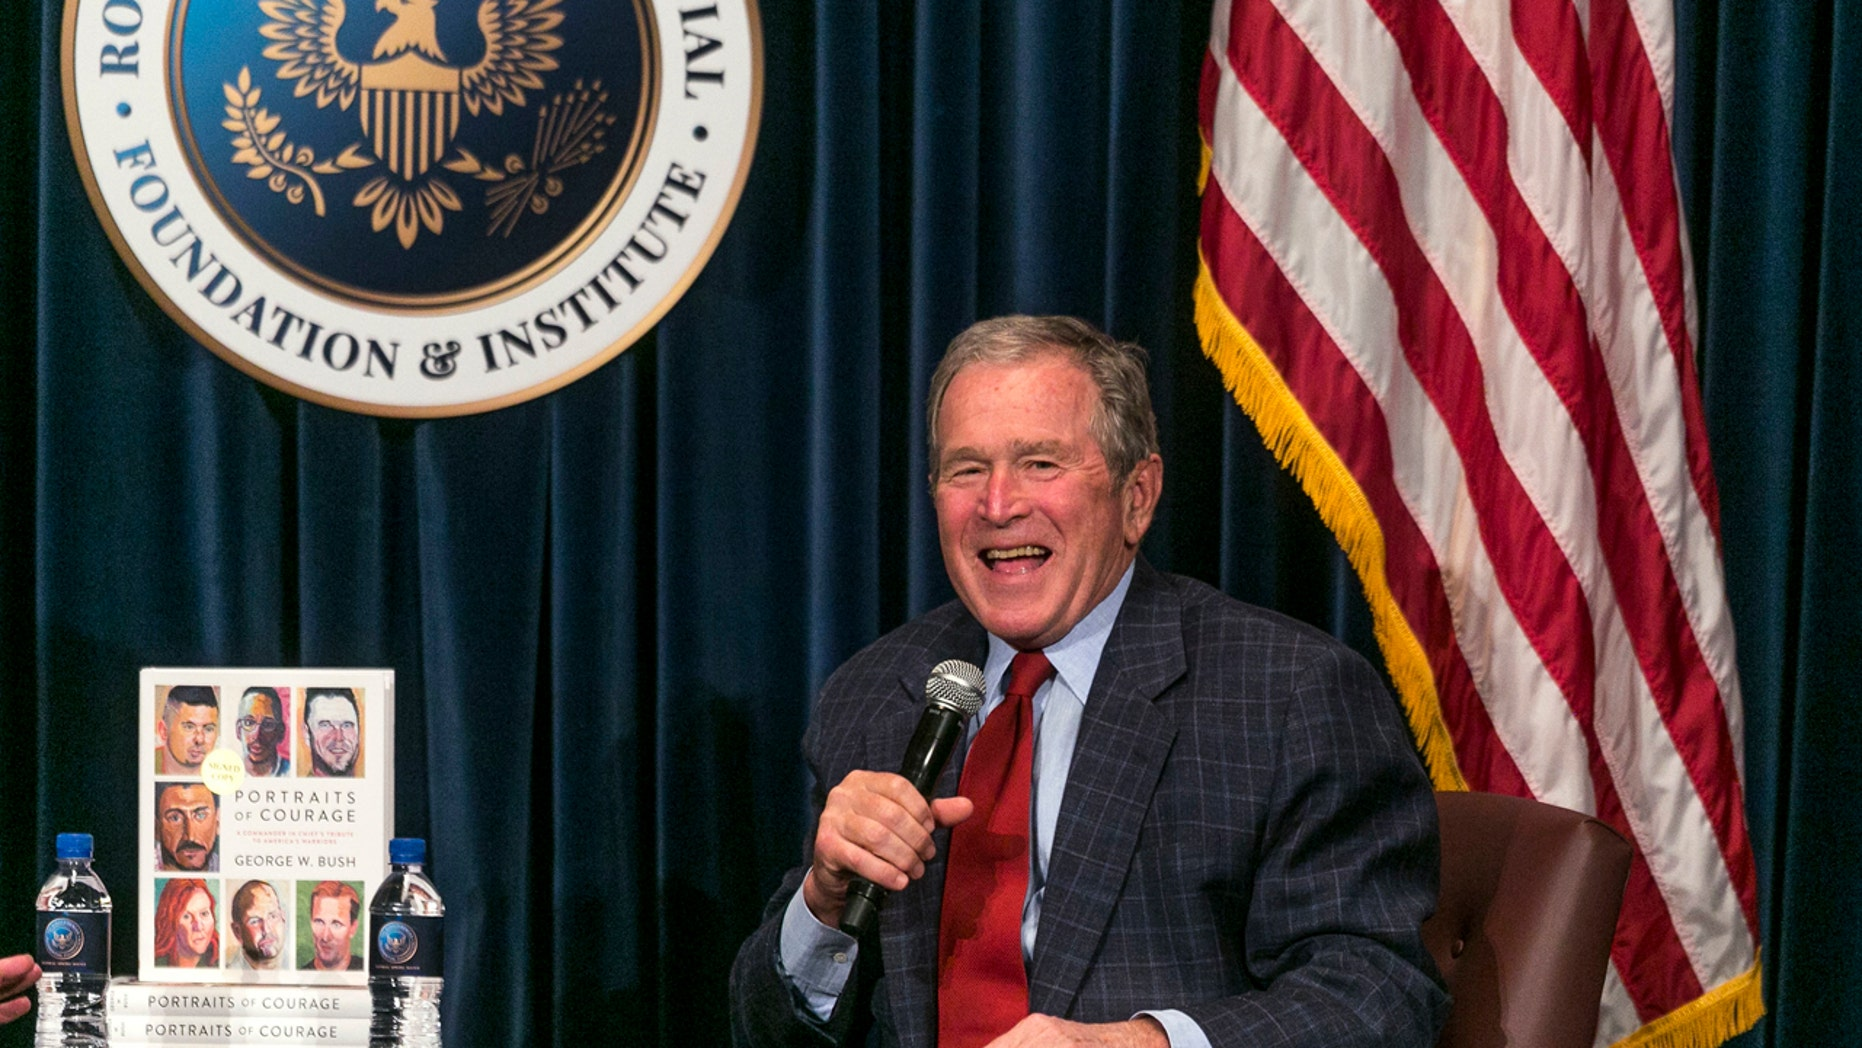 """Former U.S. President George W. Bush discusses his new book """"Portraits of Courage: A Commander in Chief's Tribute to America's Warriors,"""" a collection of his artwork featuring paintings of veterans and stories at the Ronald Reagan Presidential Library in Simi Valley, Calif., Wednesday, March 1, 2017. (AP Photo/Damian Dovarganes)"""